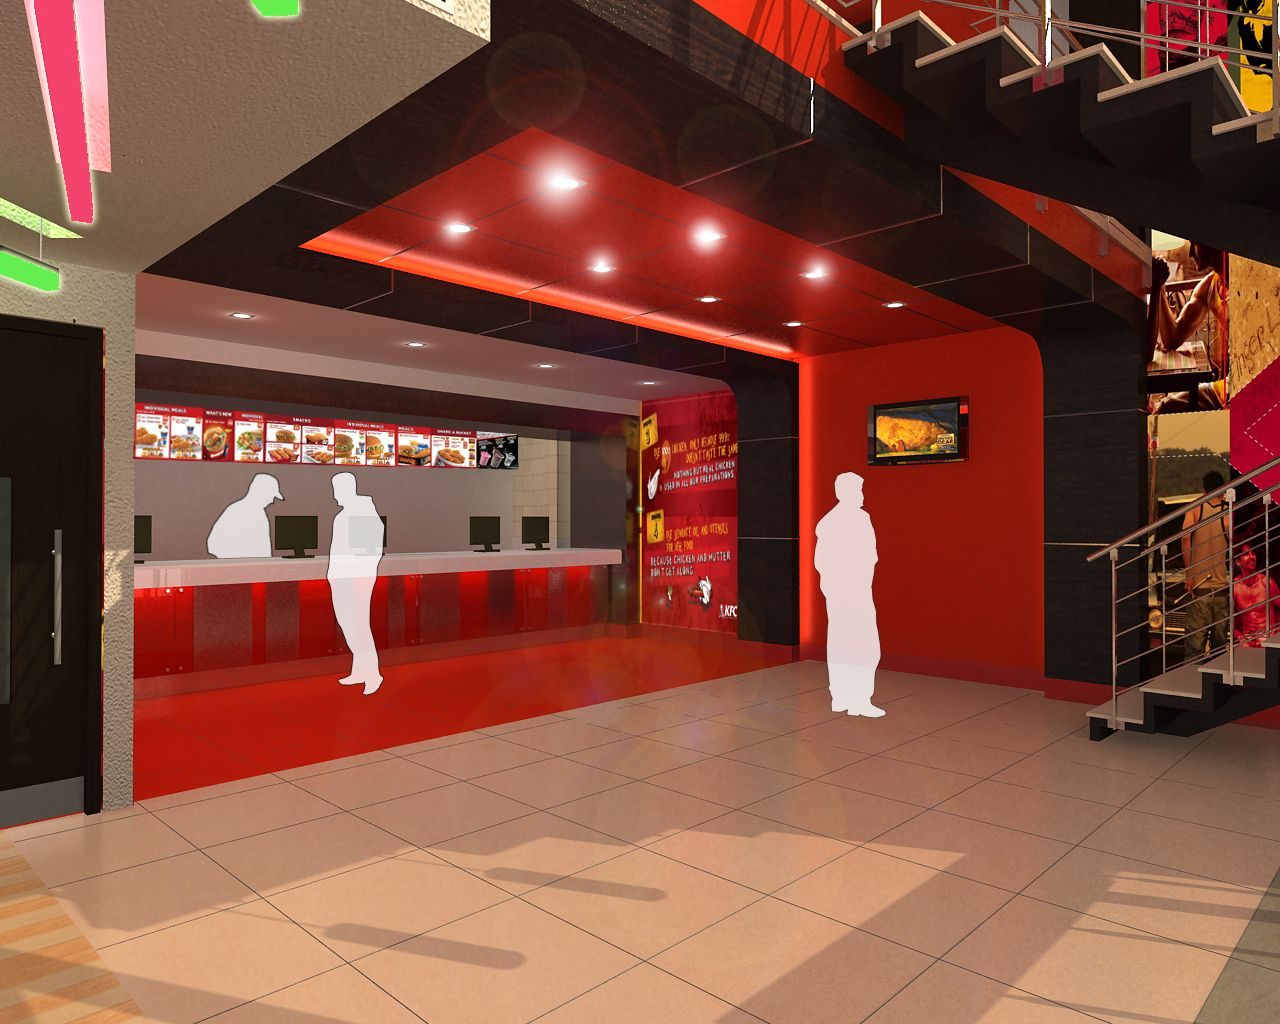 kfc restaurant interior design click this link to view more